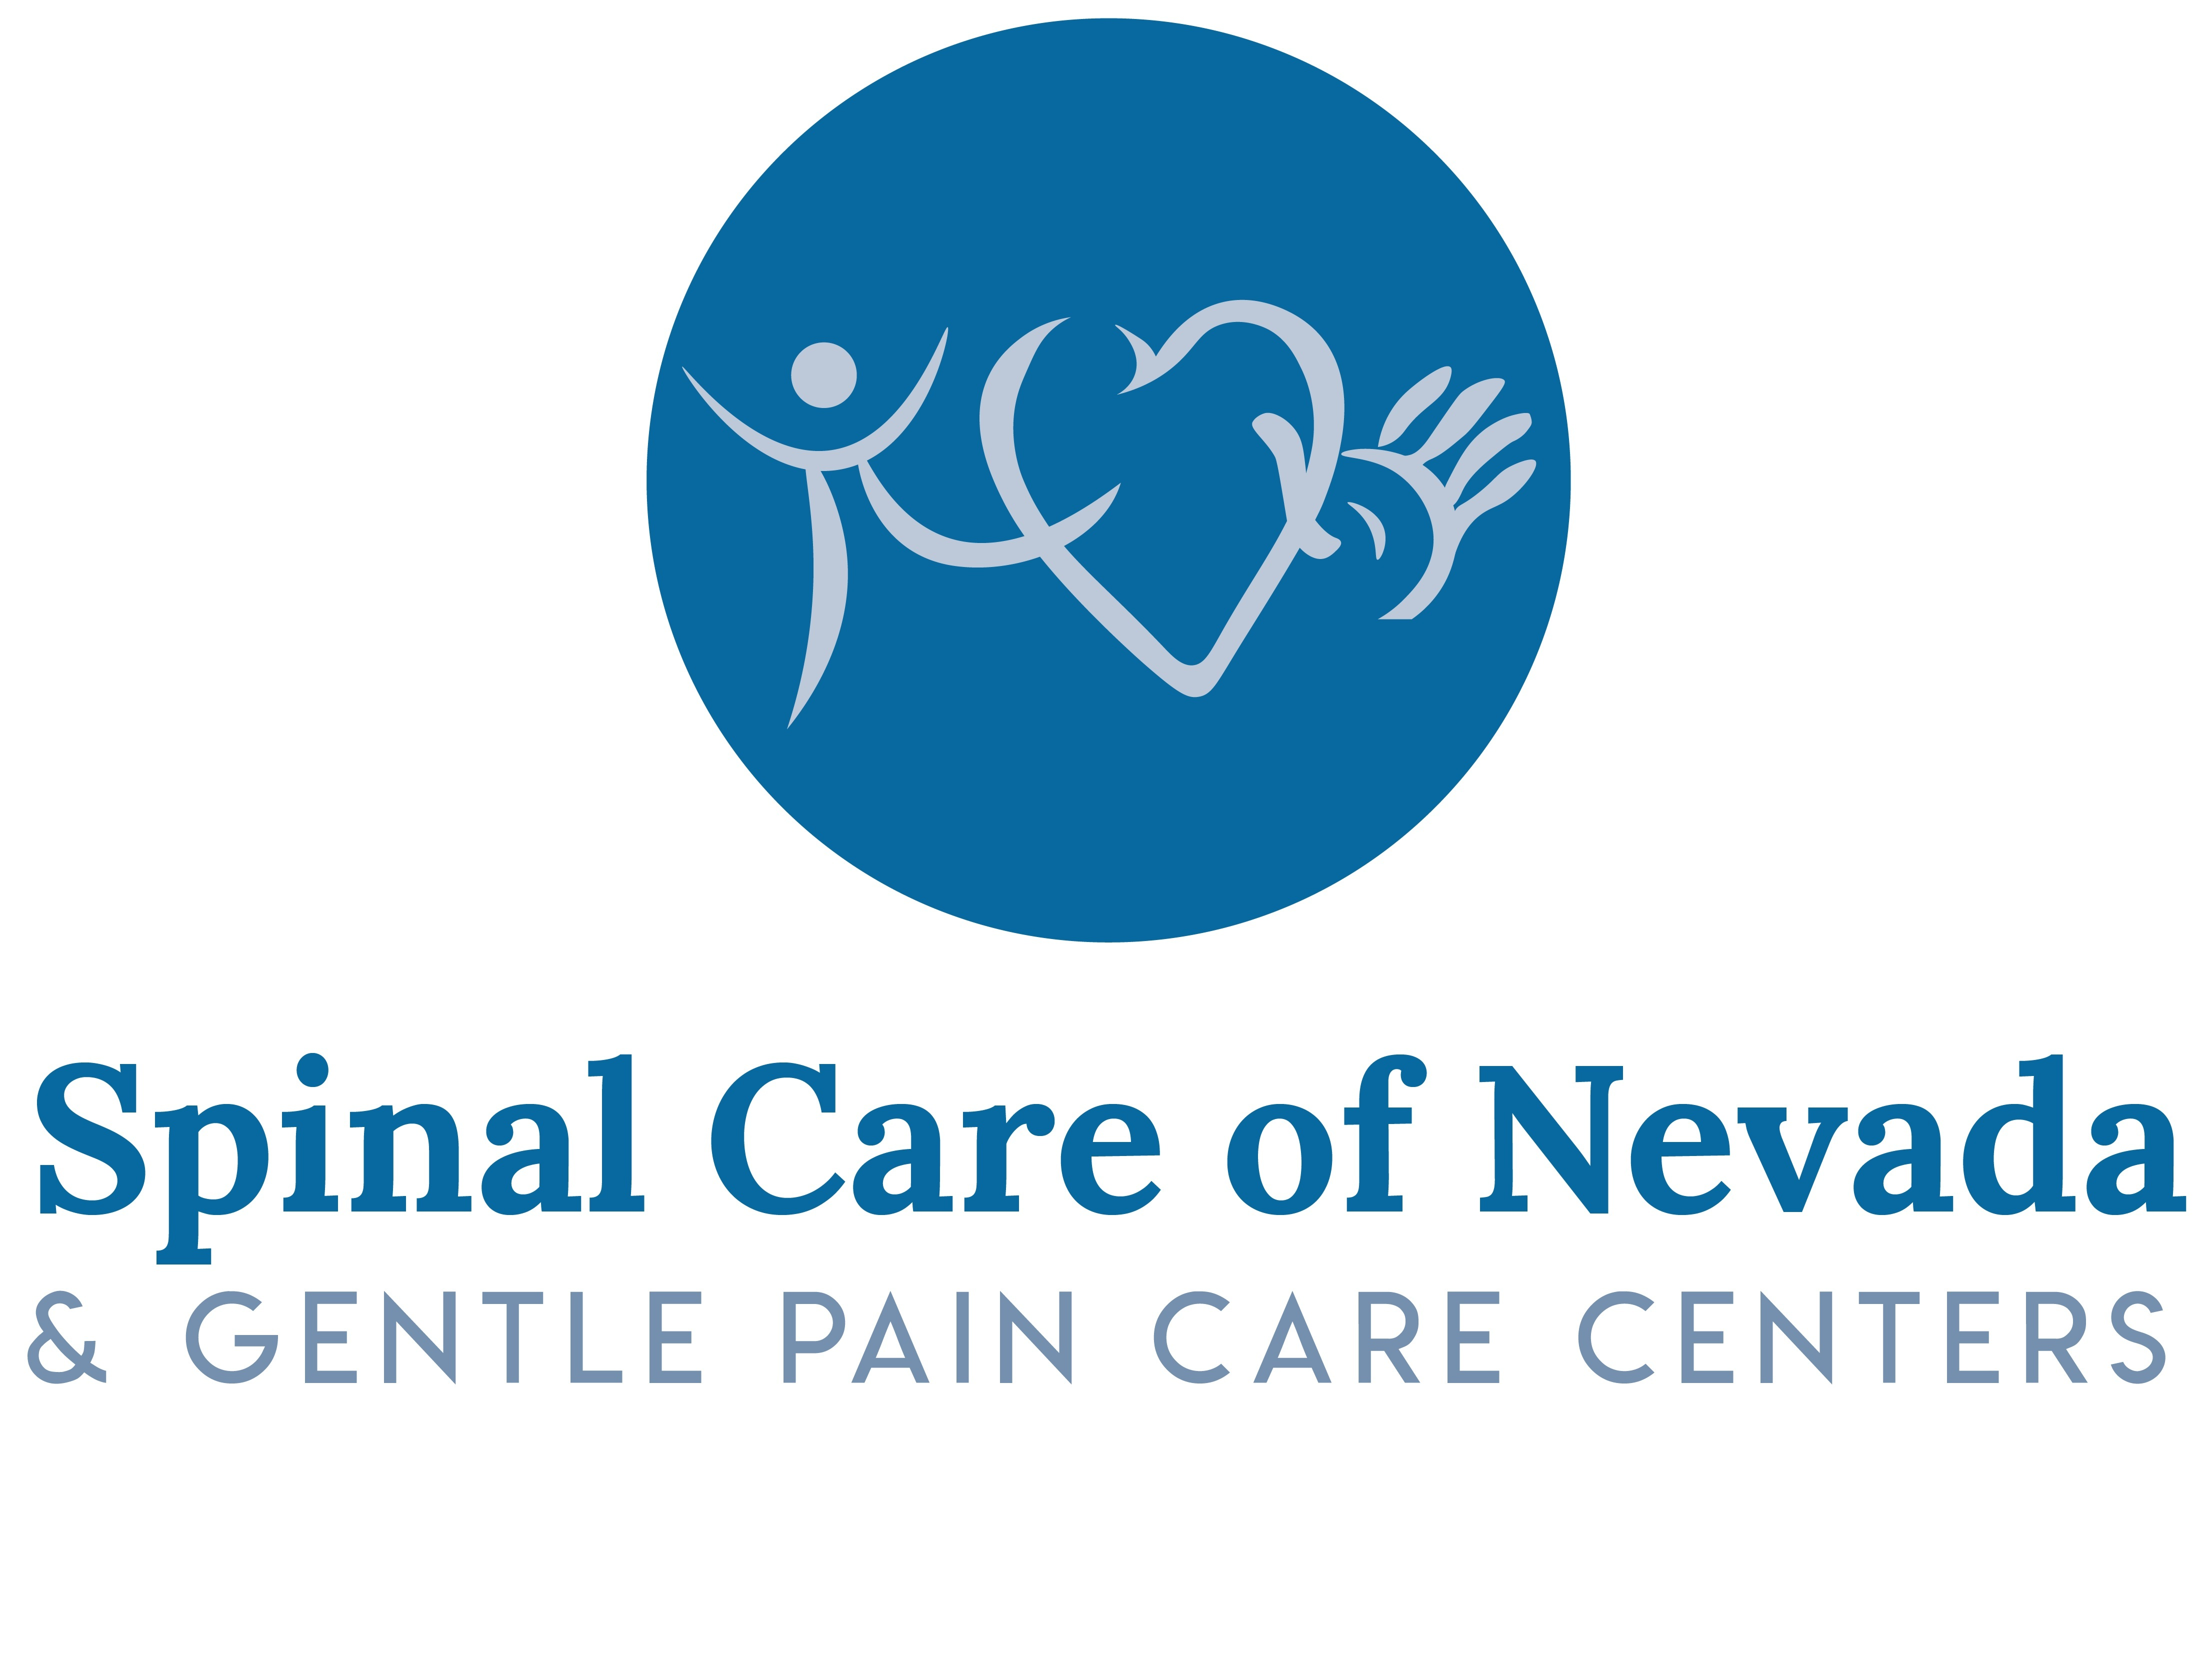 Spinal Care of Nevada